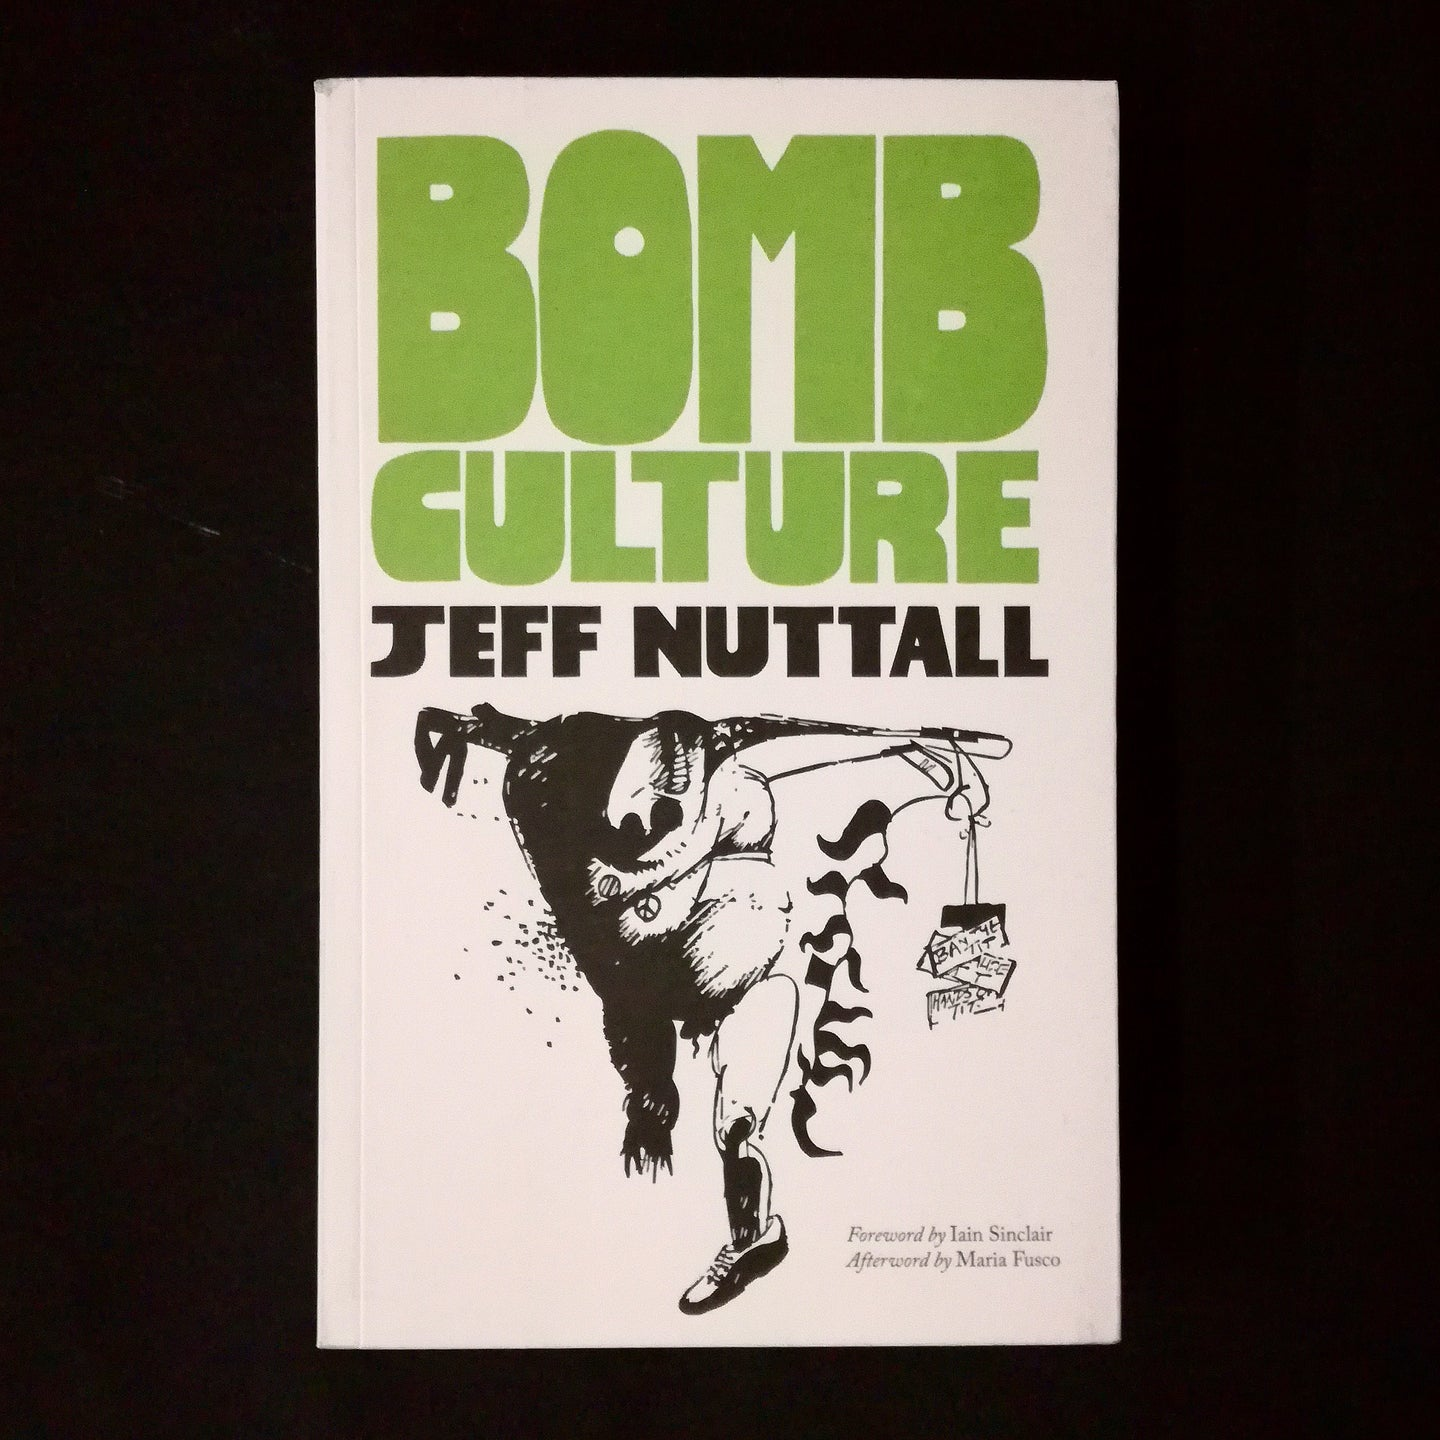 Jeff Nuttall: Bomb Culture